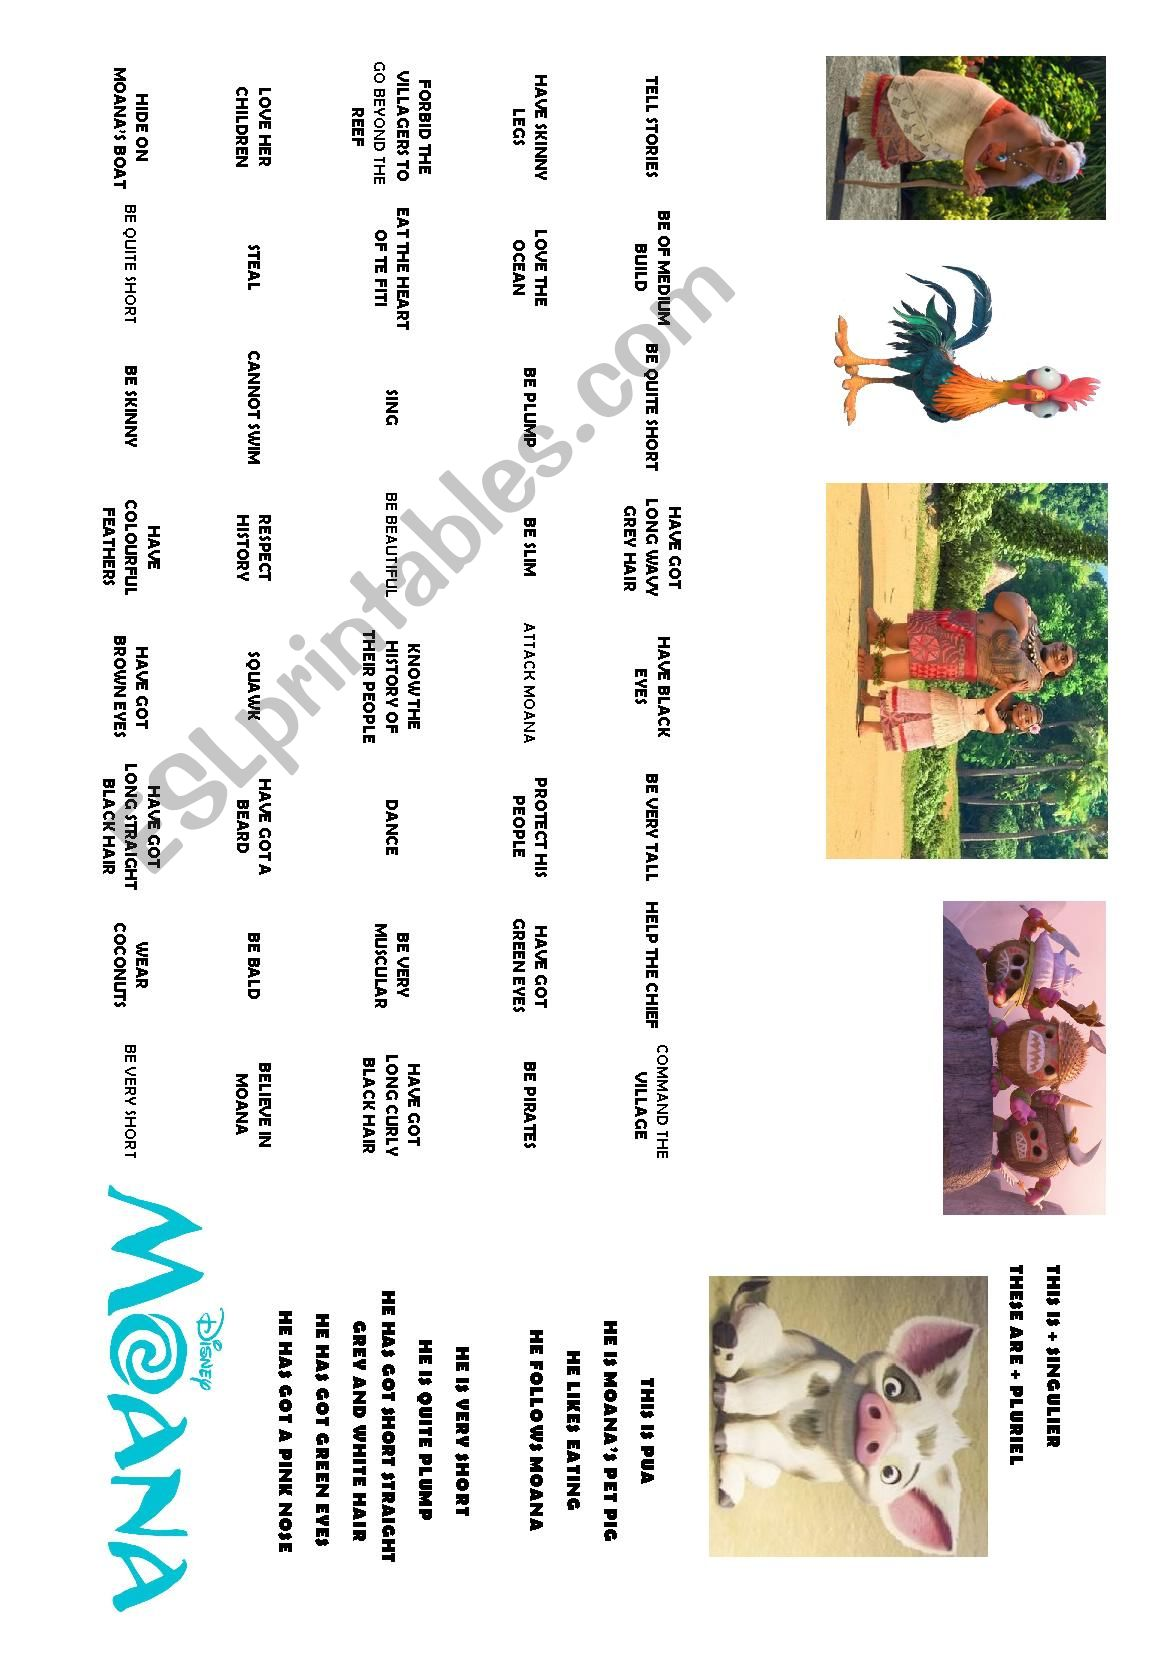 Moana Vaiana Worksheet 3 Describing The Character